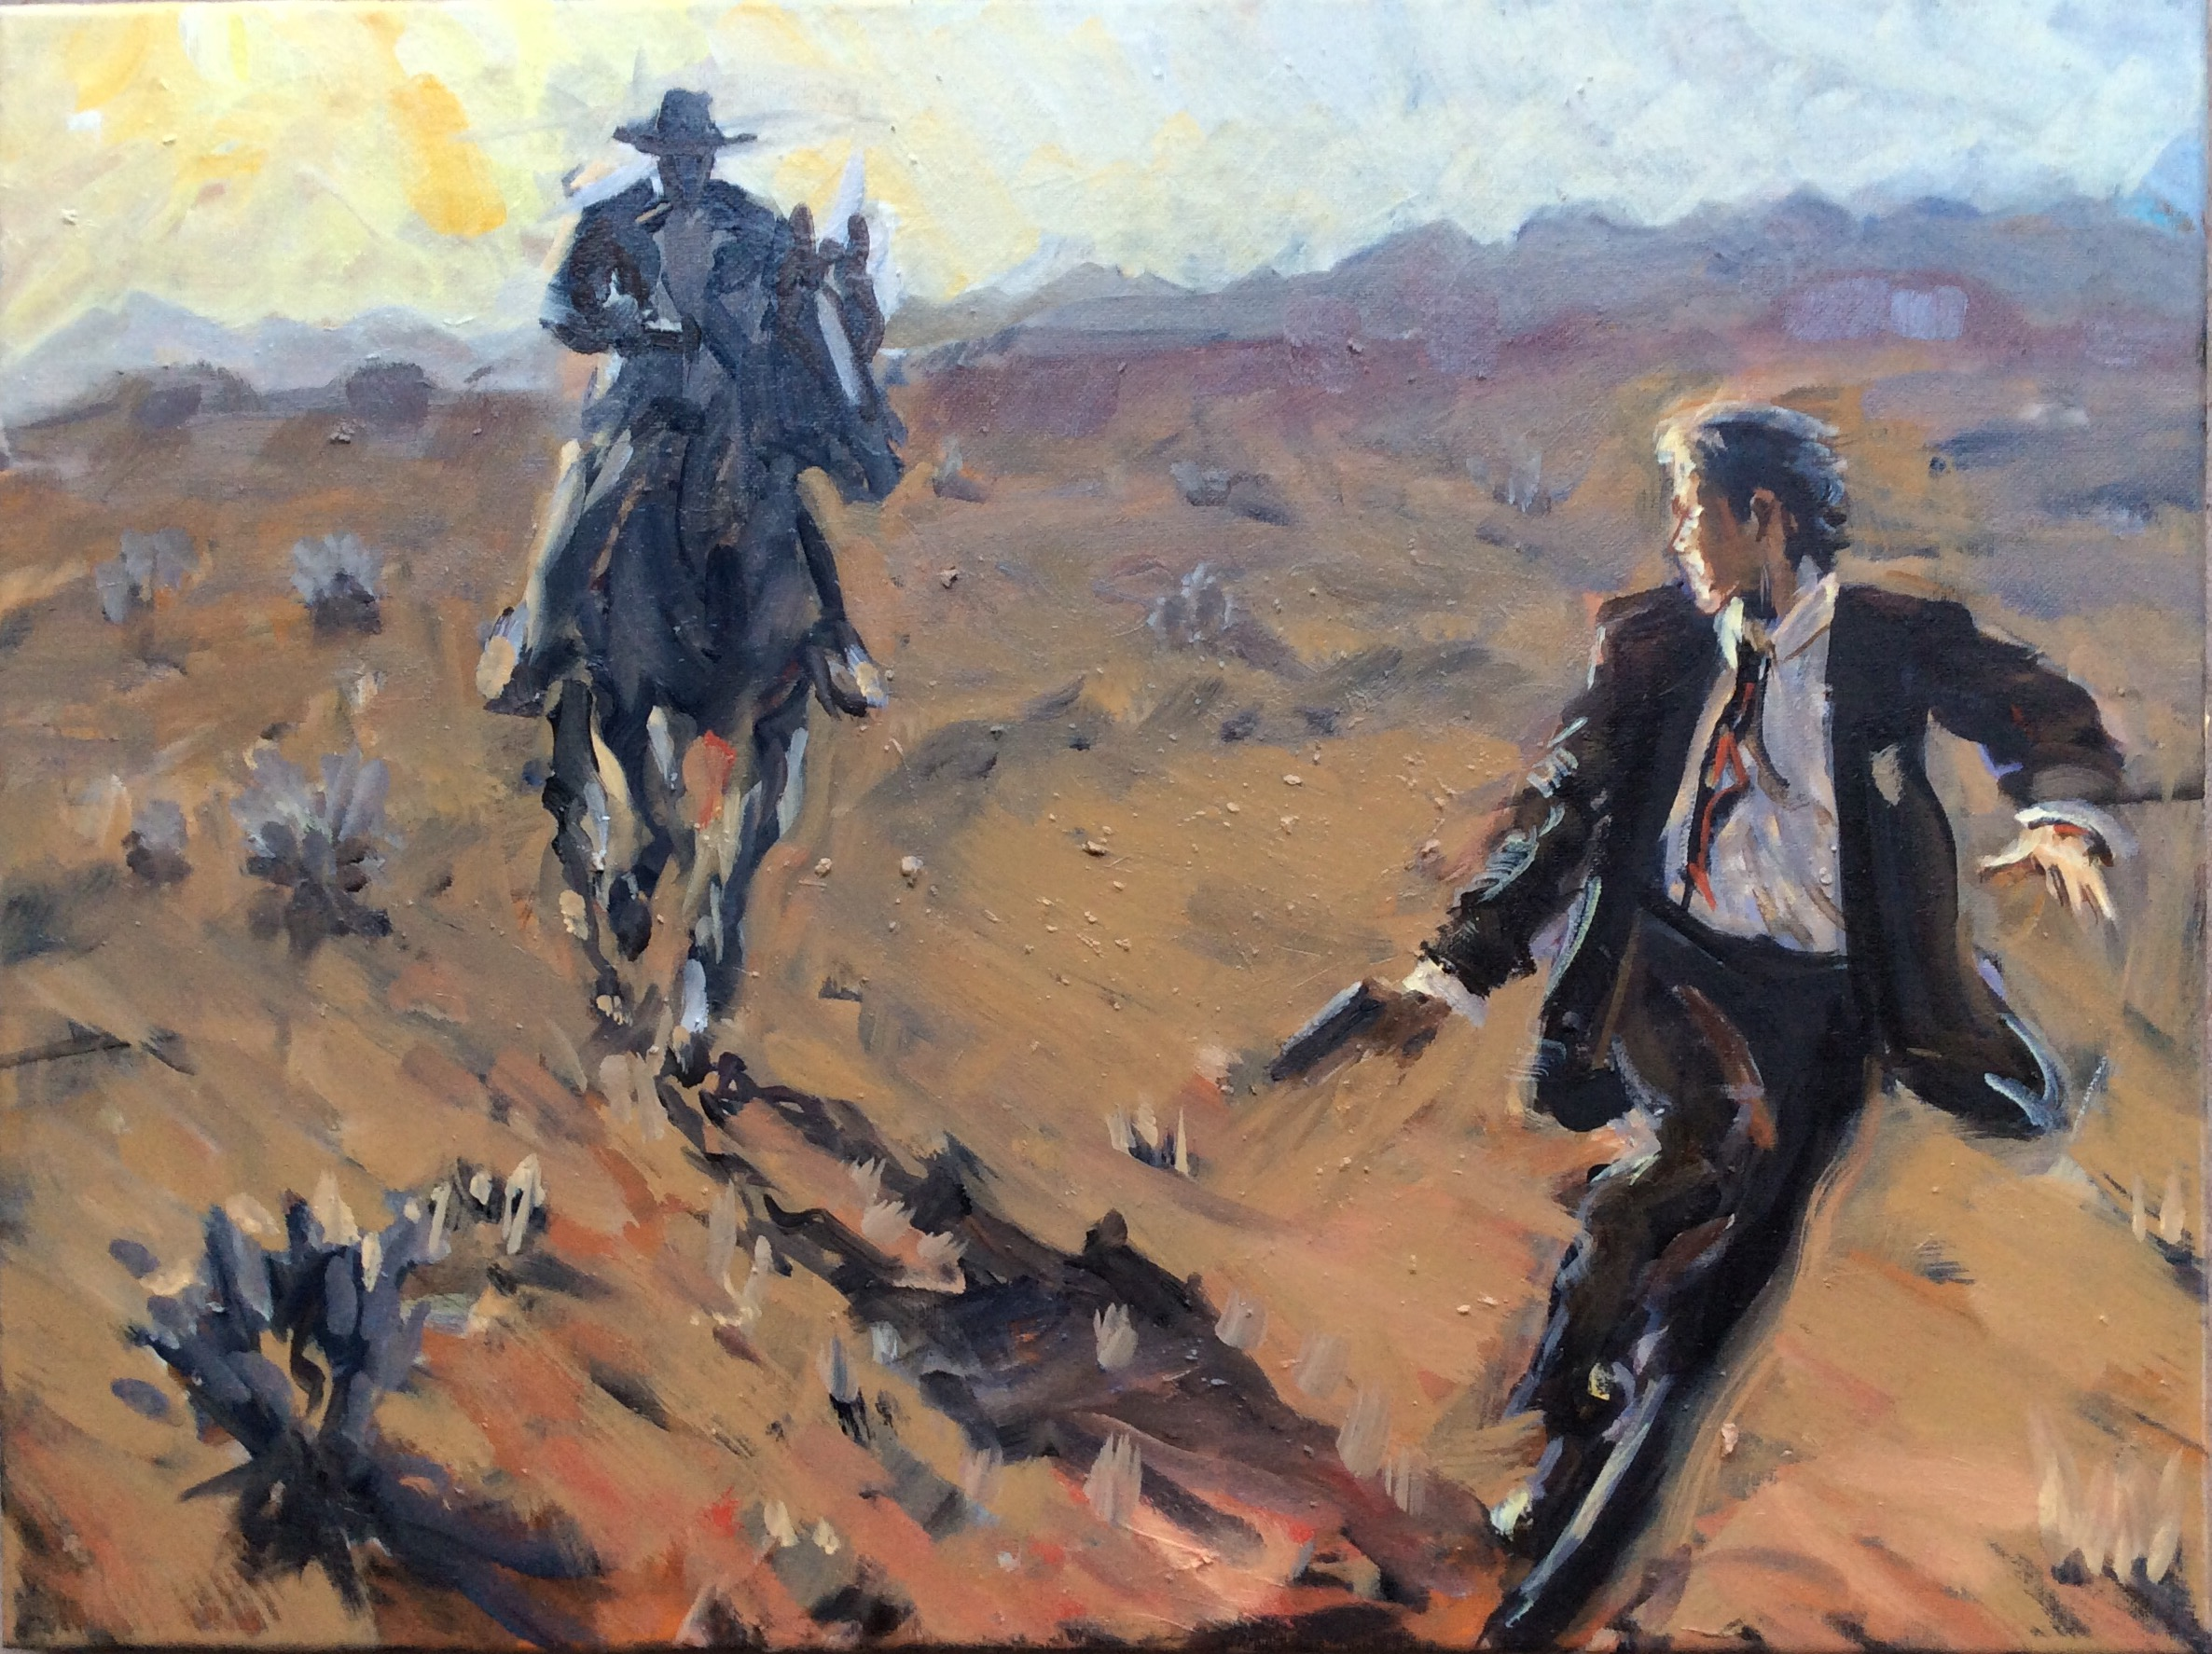 Gambler on the Run  20 x 24 inches, oil on canvas